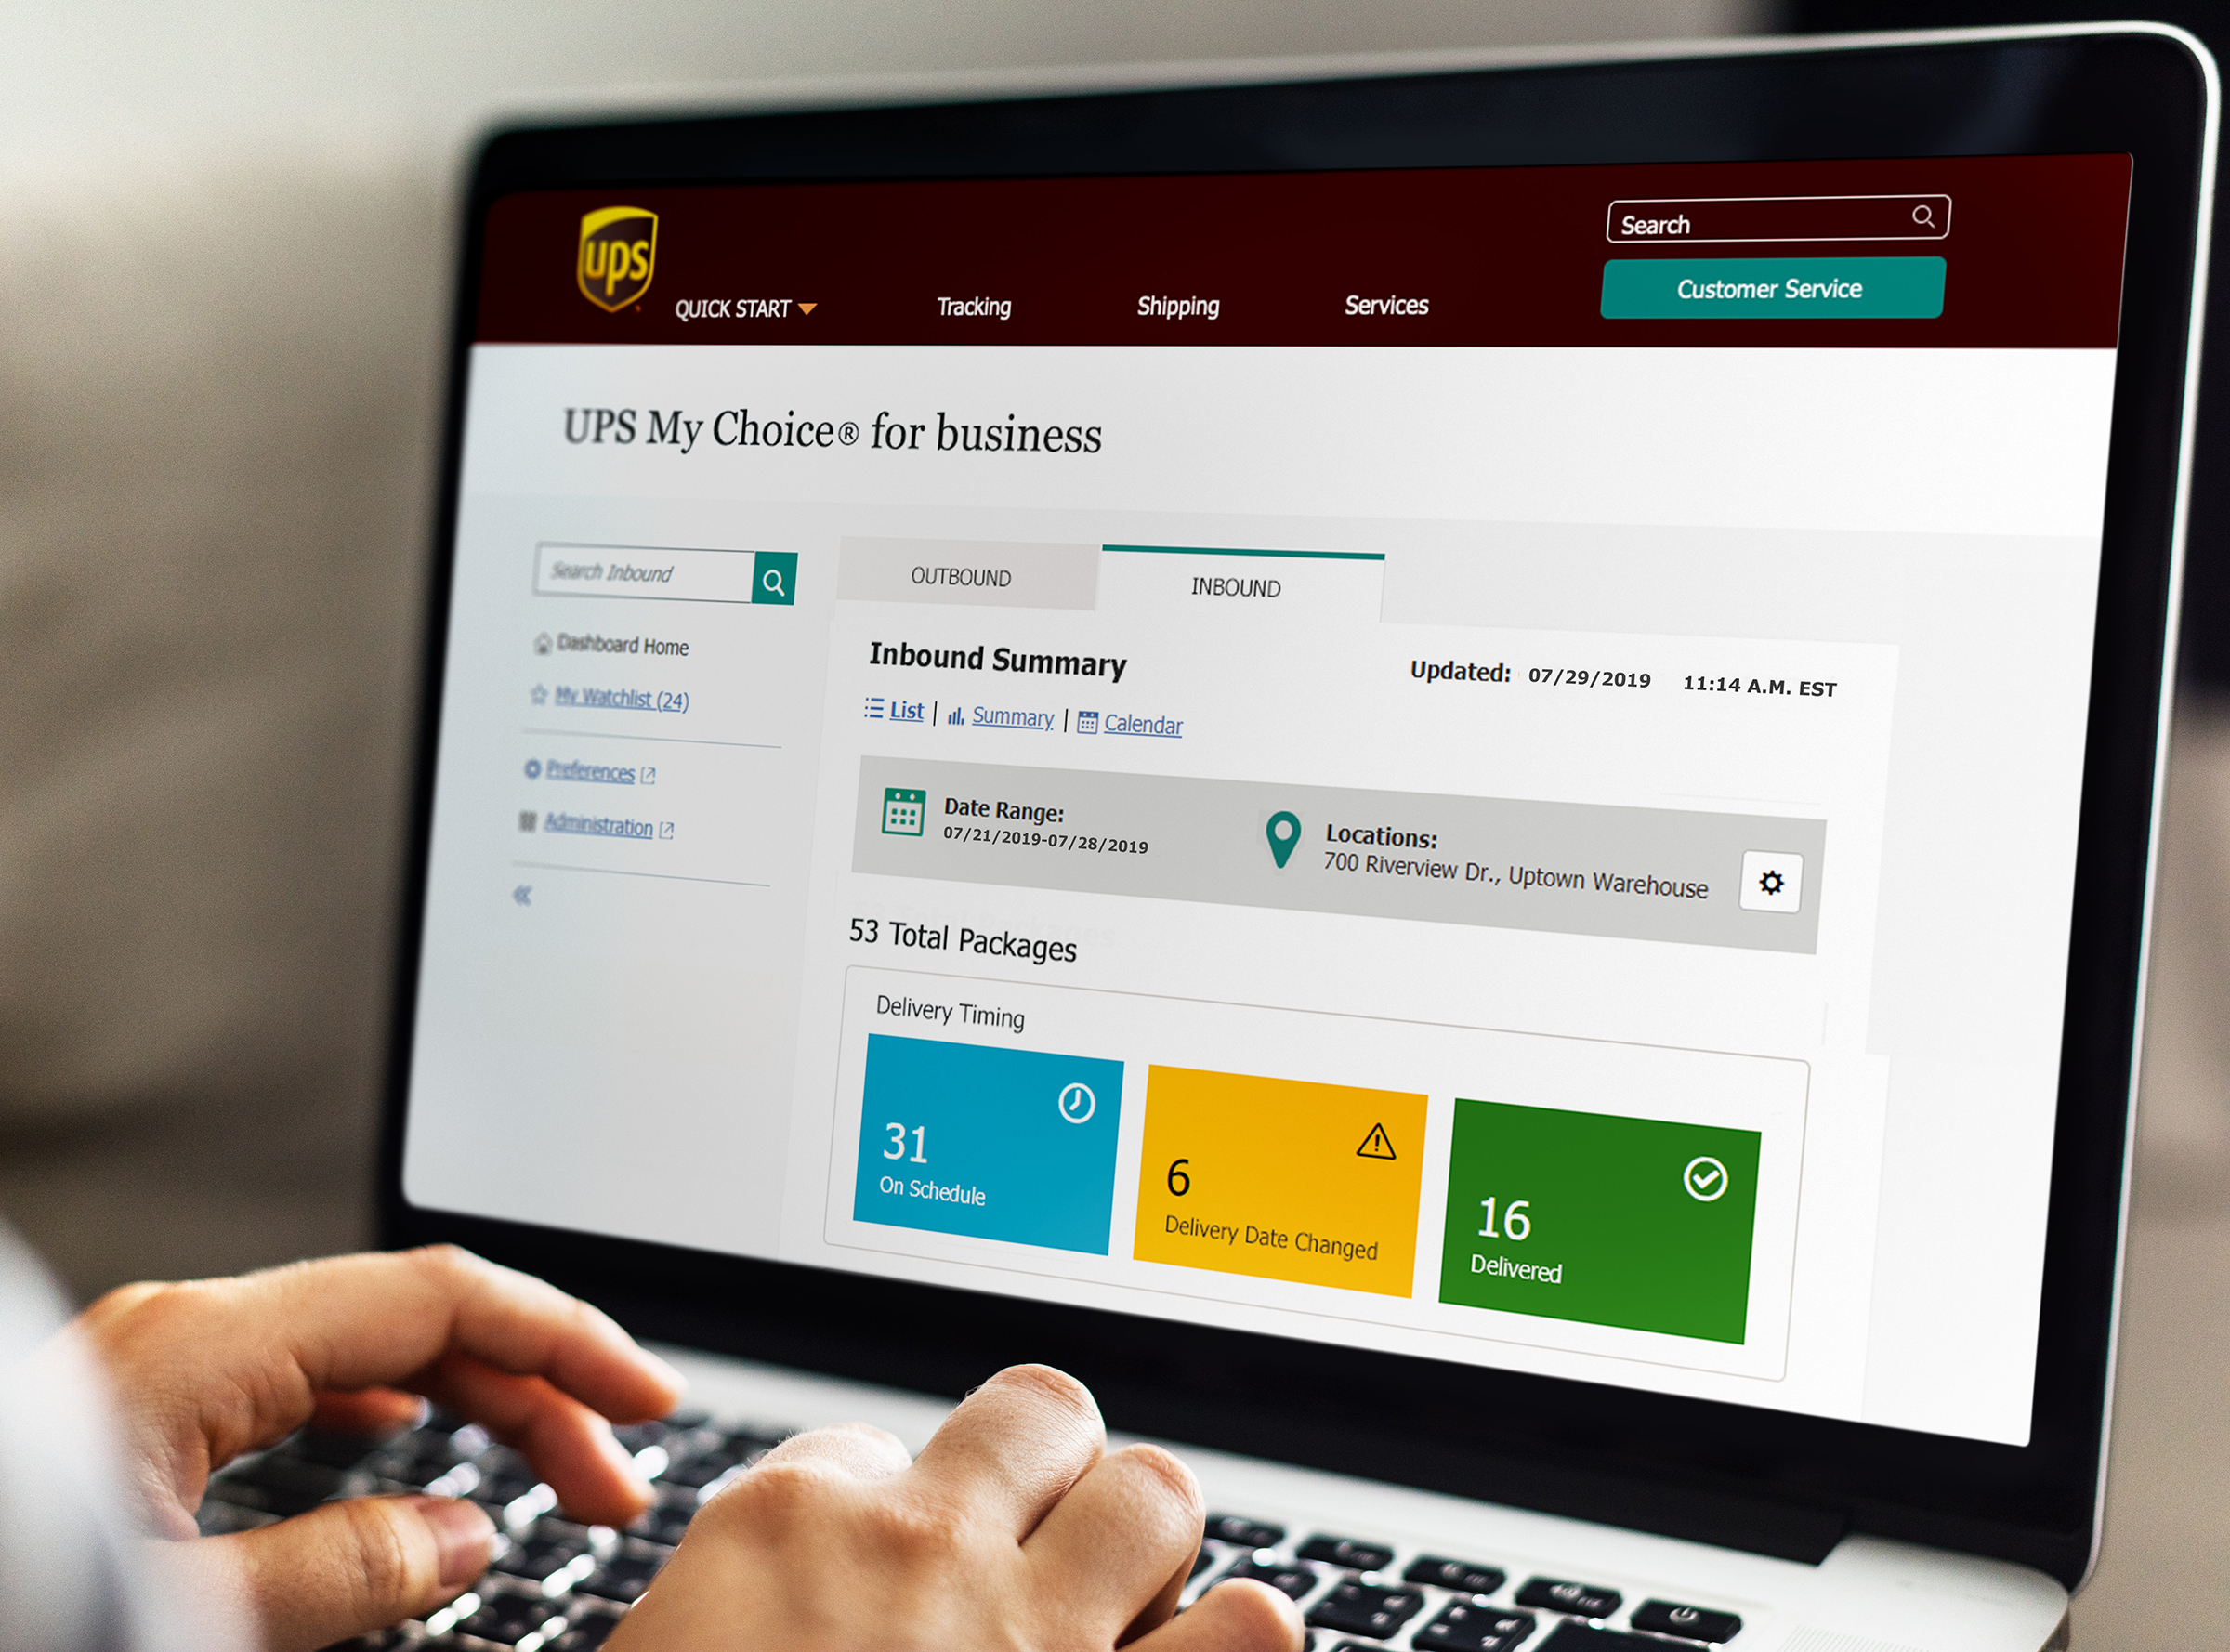 UPS My Choice for business platform launched | Post & Parcel